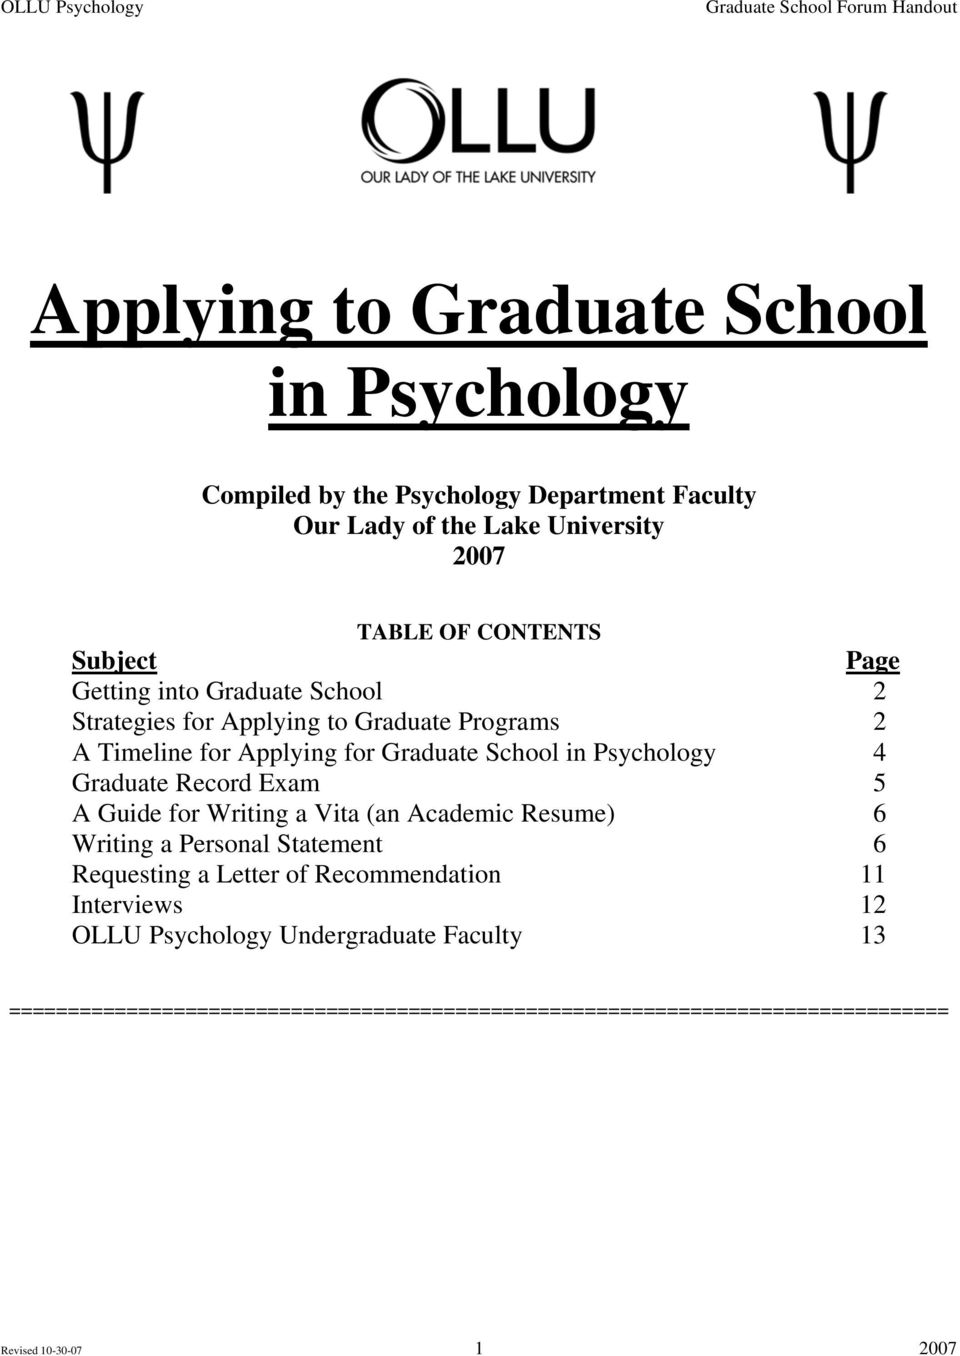 Applying for Graduate School in Psychology 4 Graduate Record Exam 5 A Guide for Writing a Vita (an Academic Resume) 6 Writing a